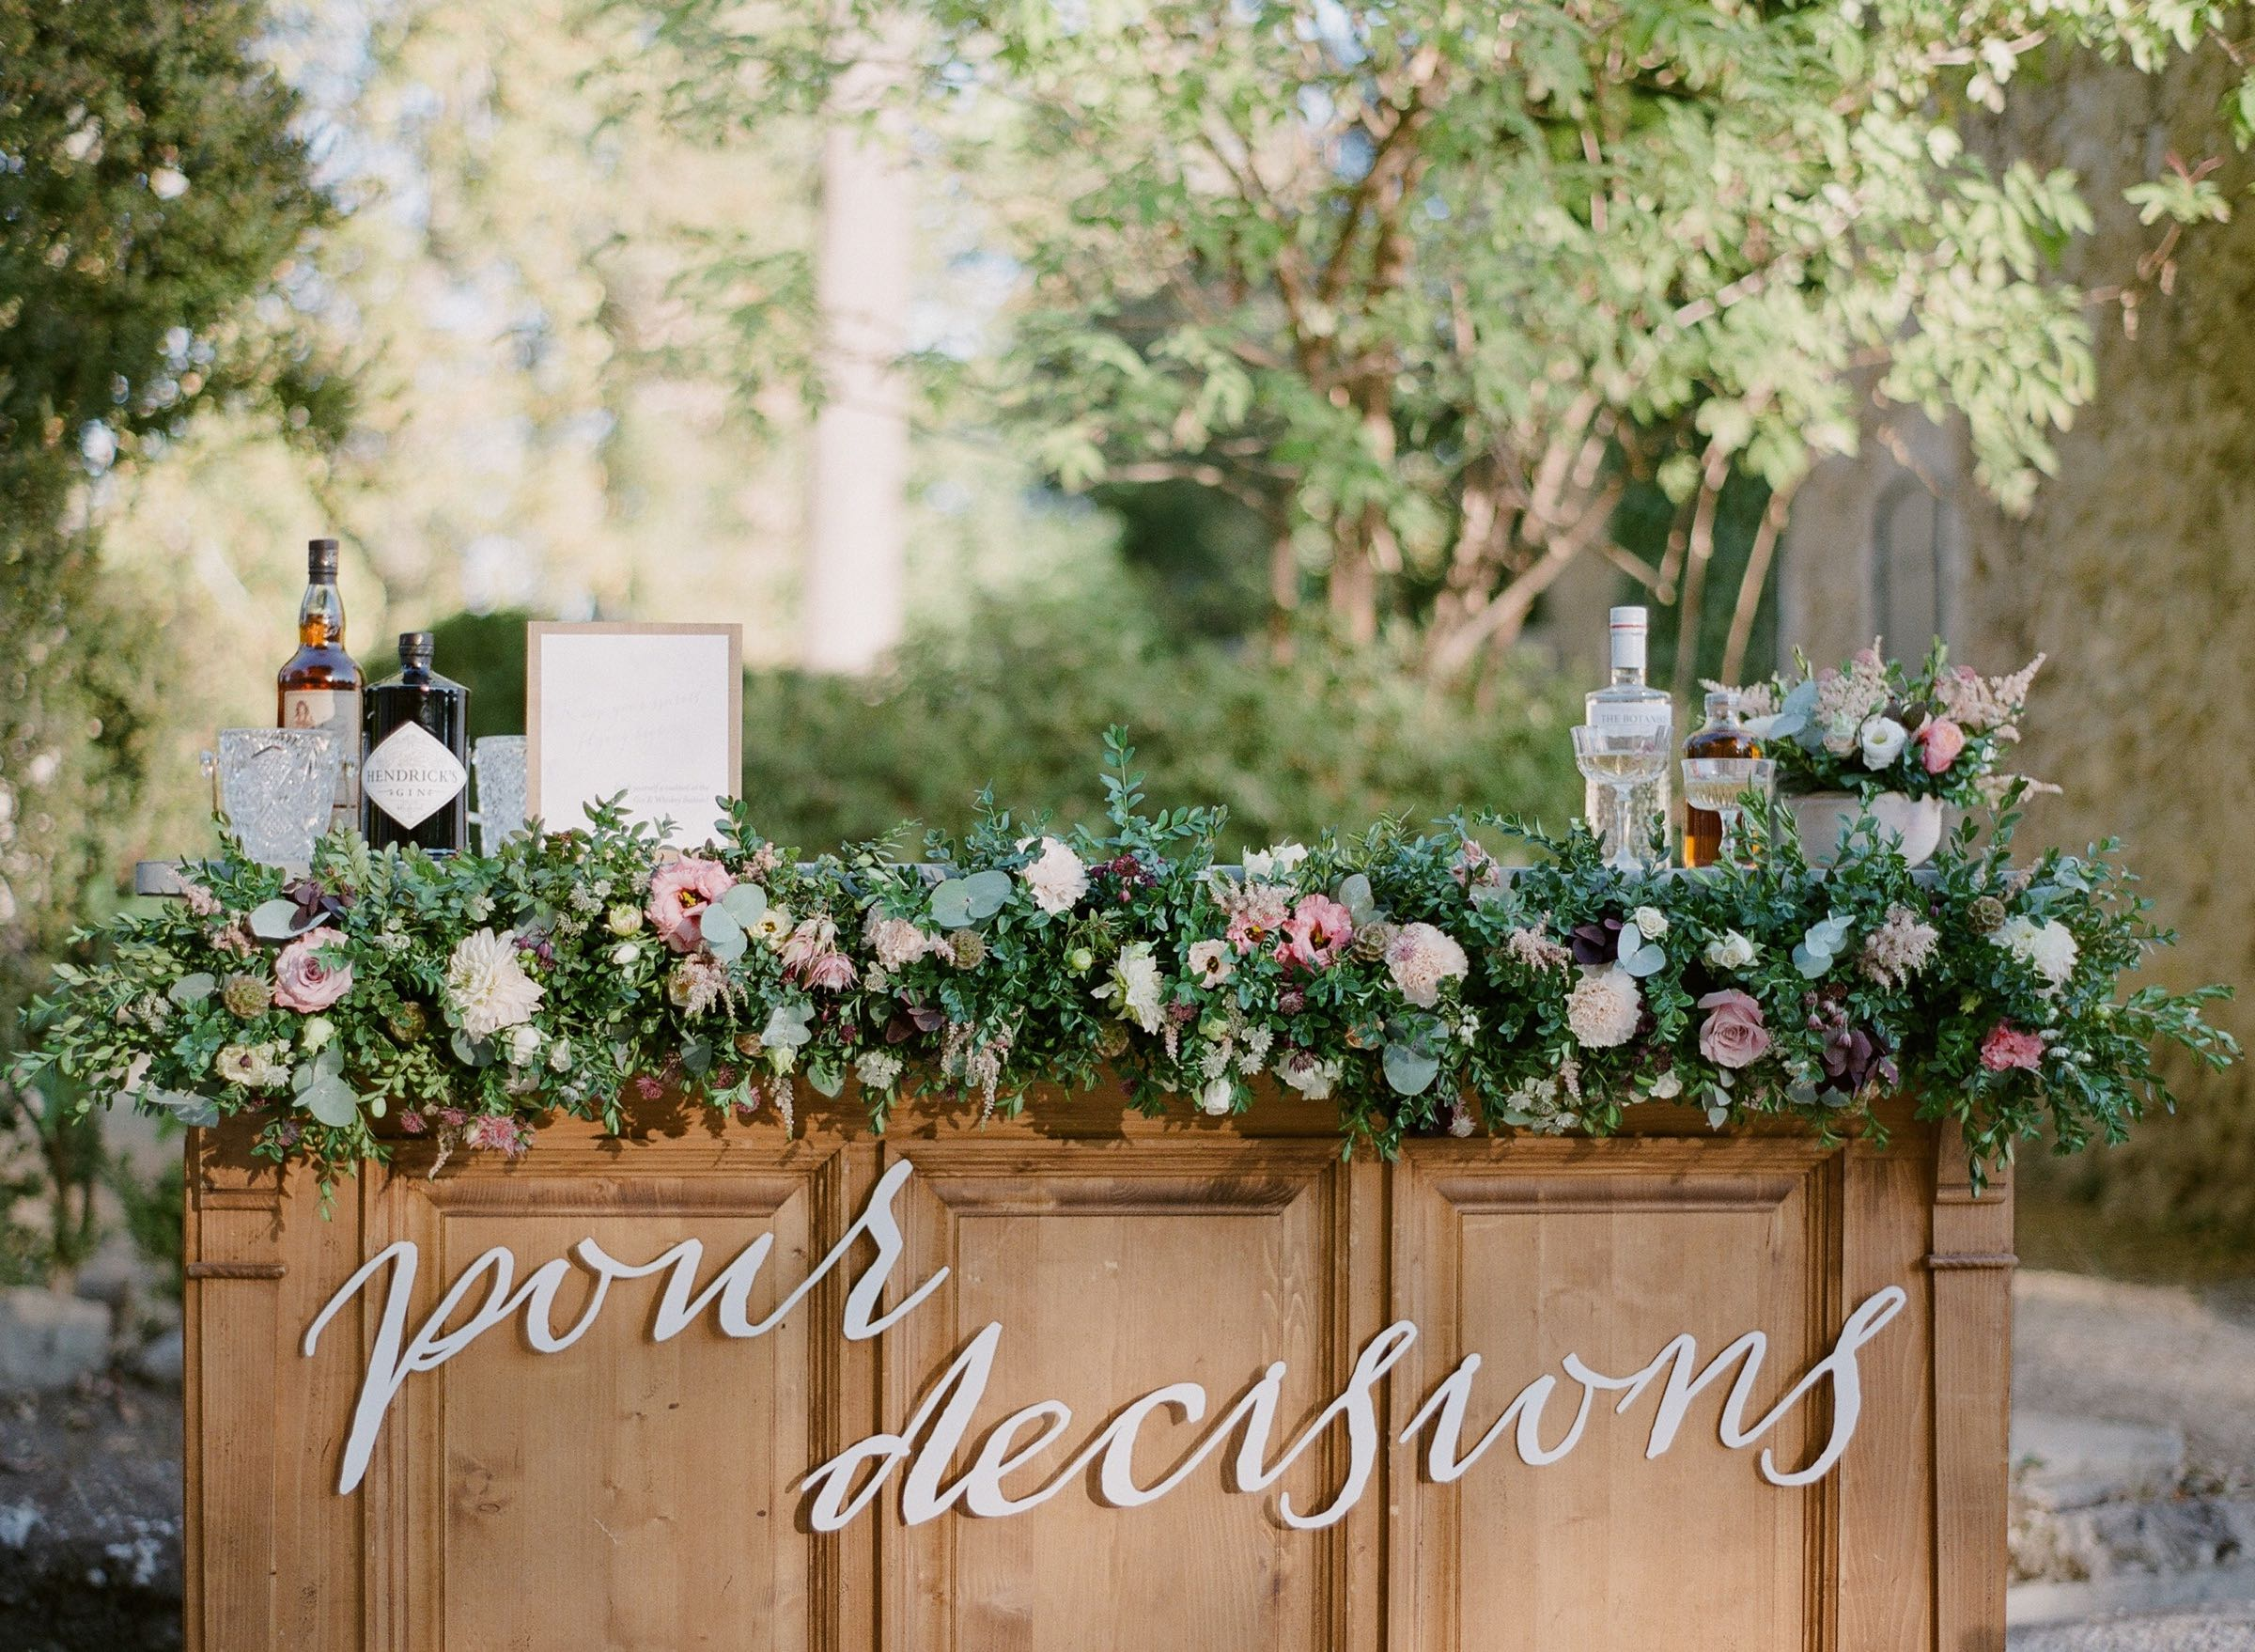 Wedding bar adorned with lush floral decor and laser-cut lettering